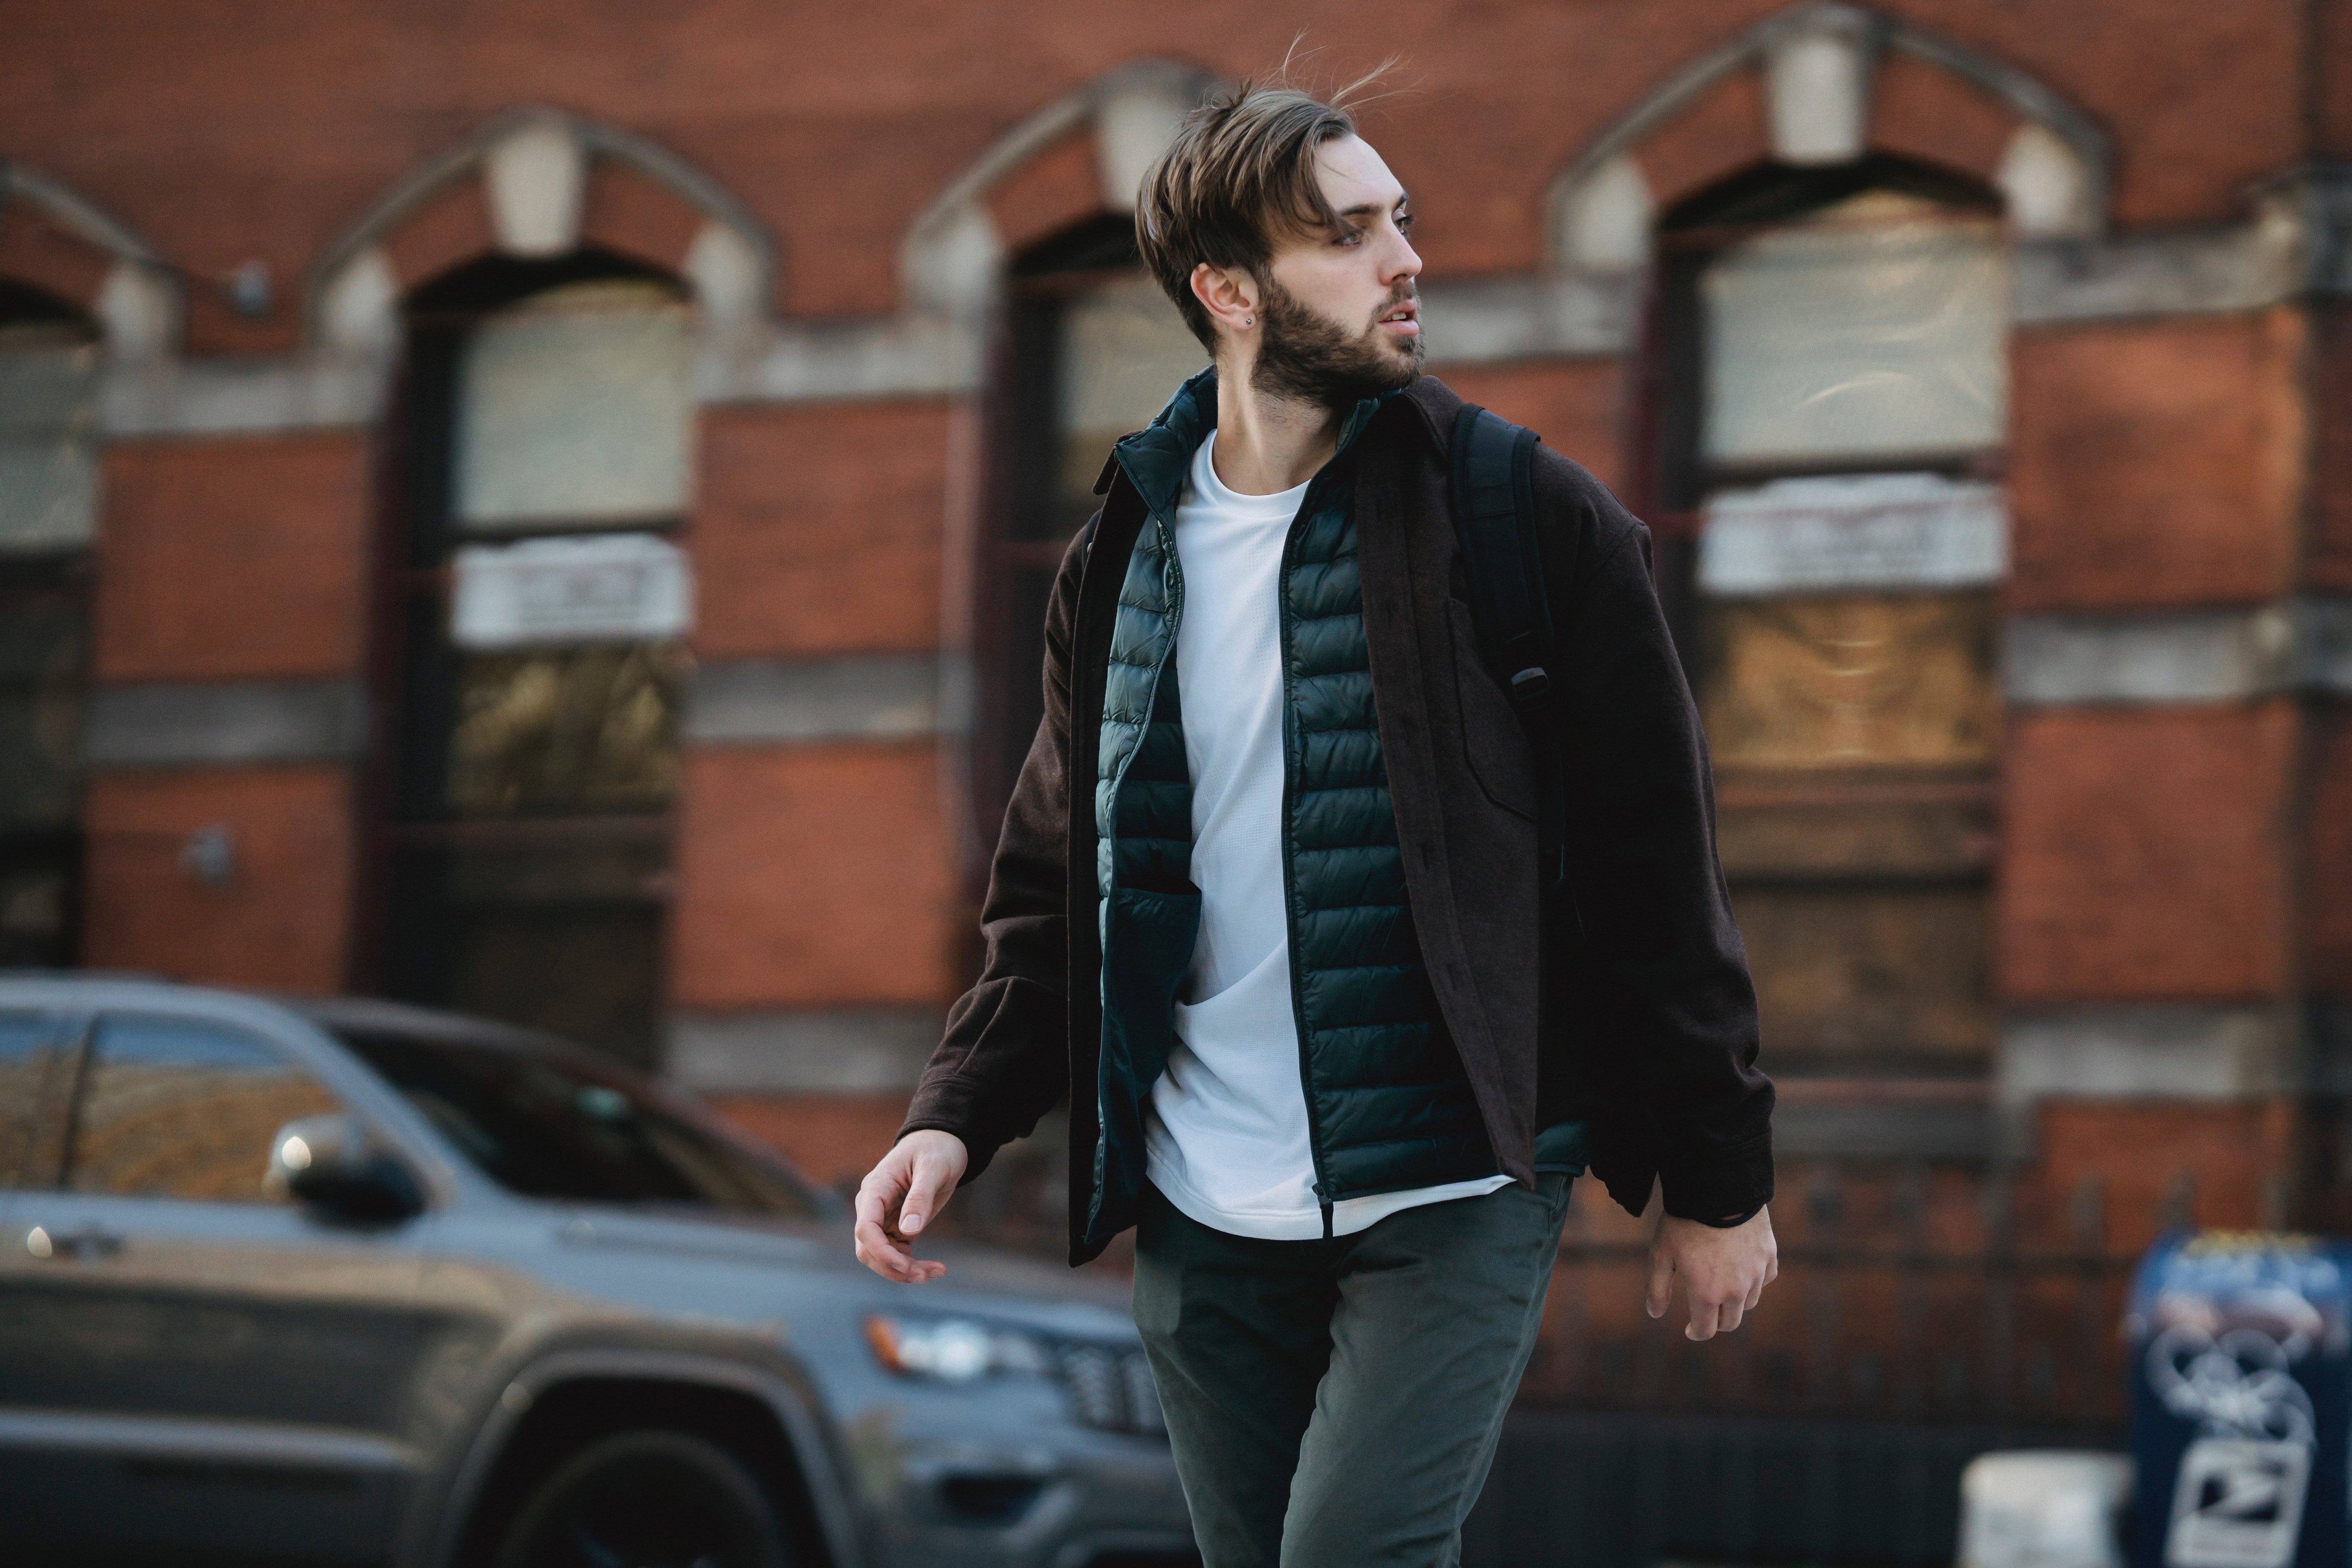 Man walking down the street | Source: Pexels/ Mary Taylor